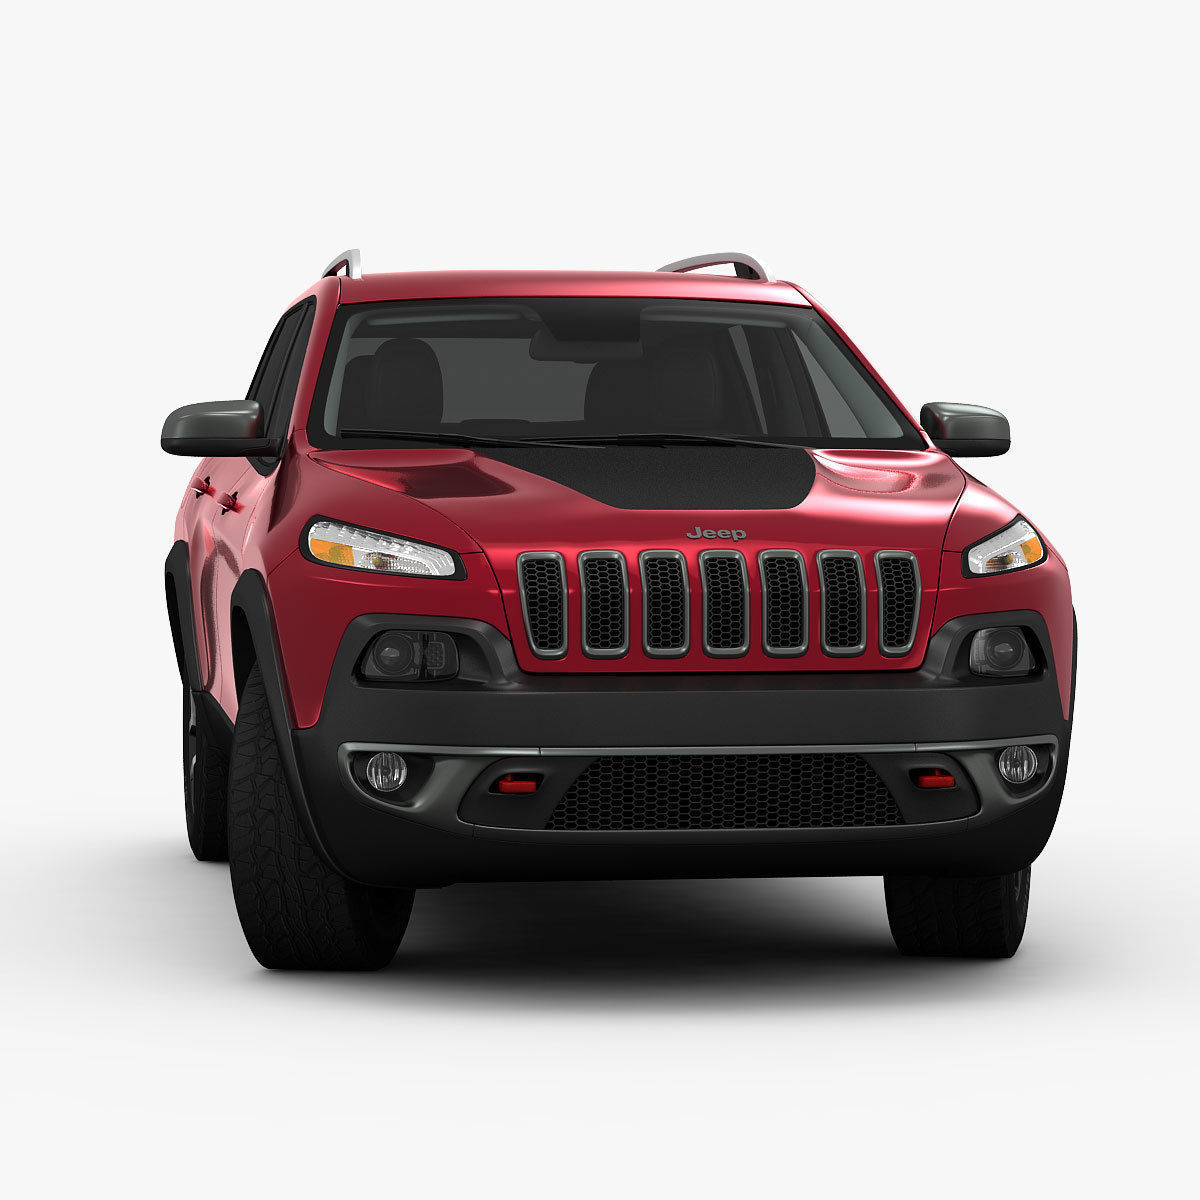 trailhawk cherokee malcolm car reviews jeep flynn review carsguide diesel limited